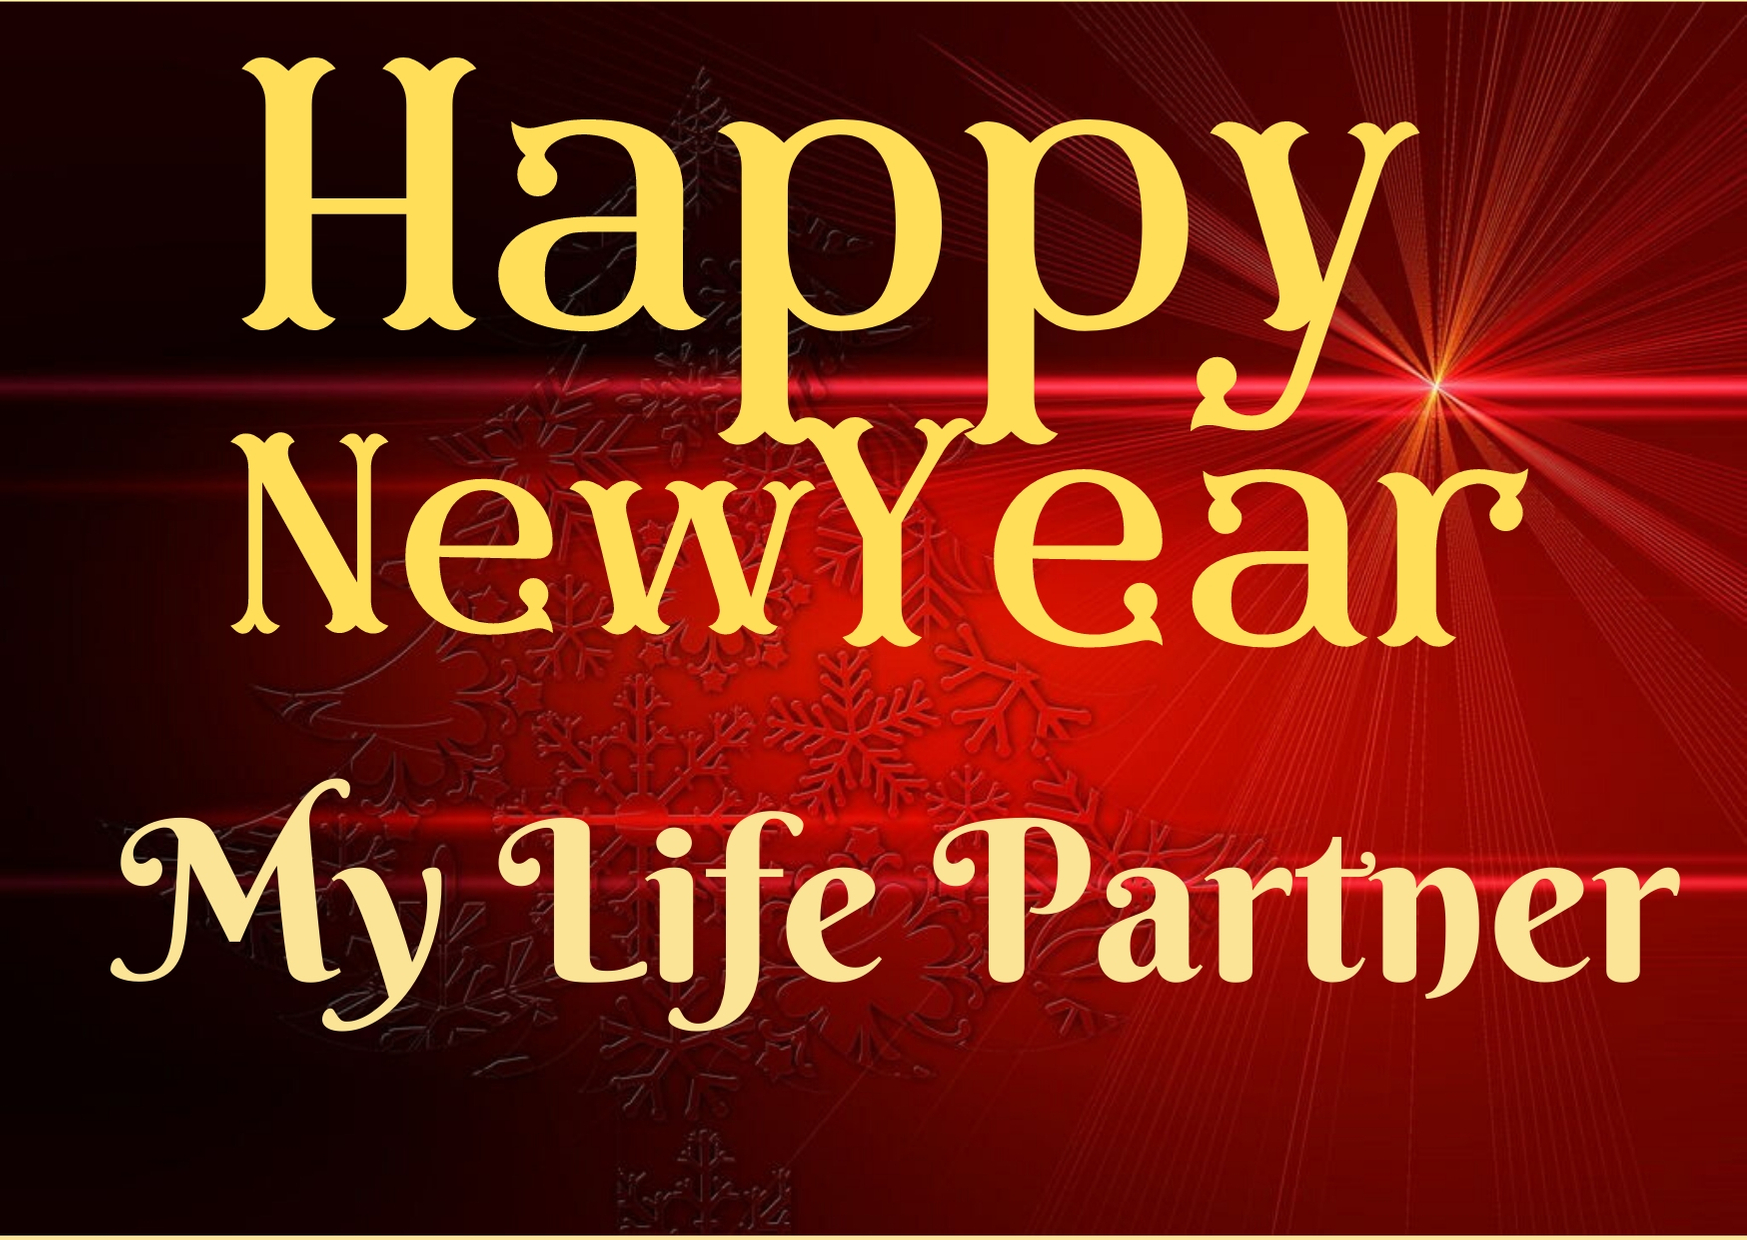 Happy New Year 2020 Wishes For Life Partner